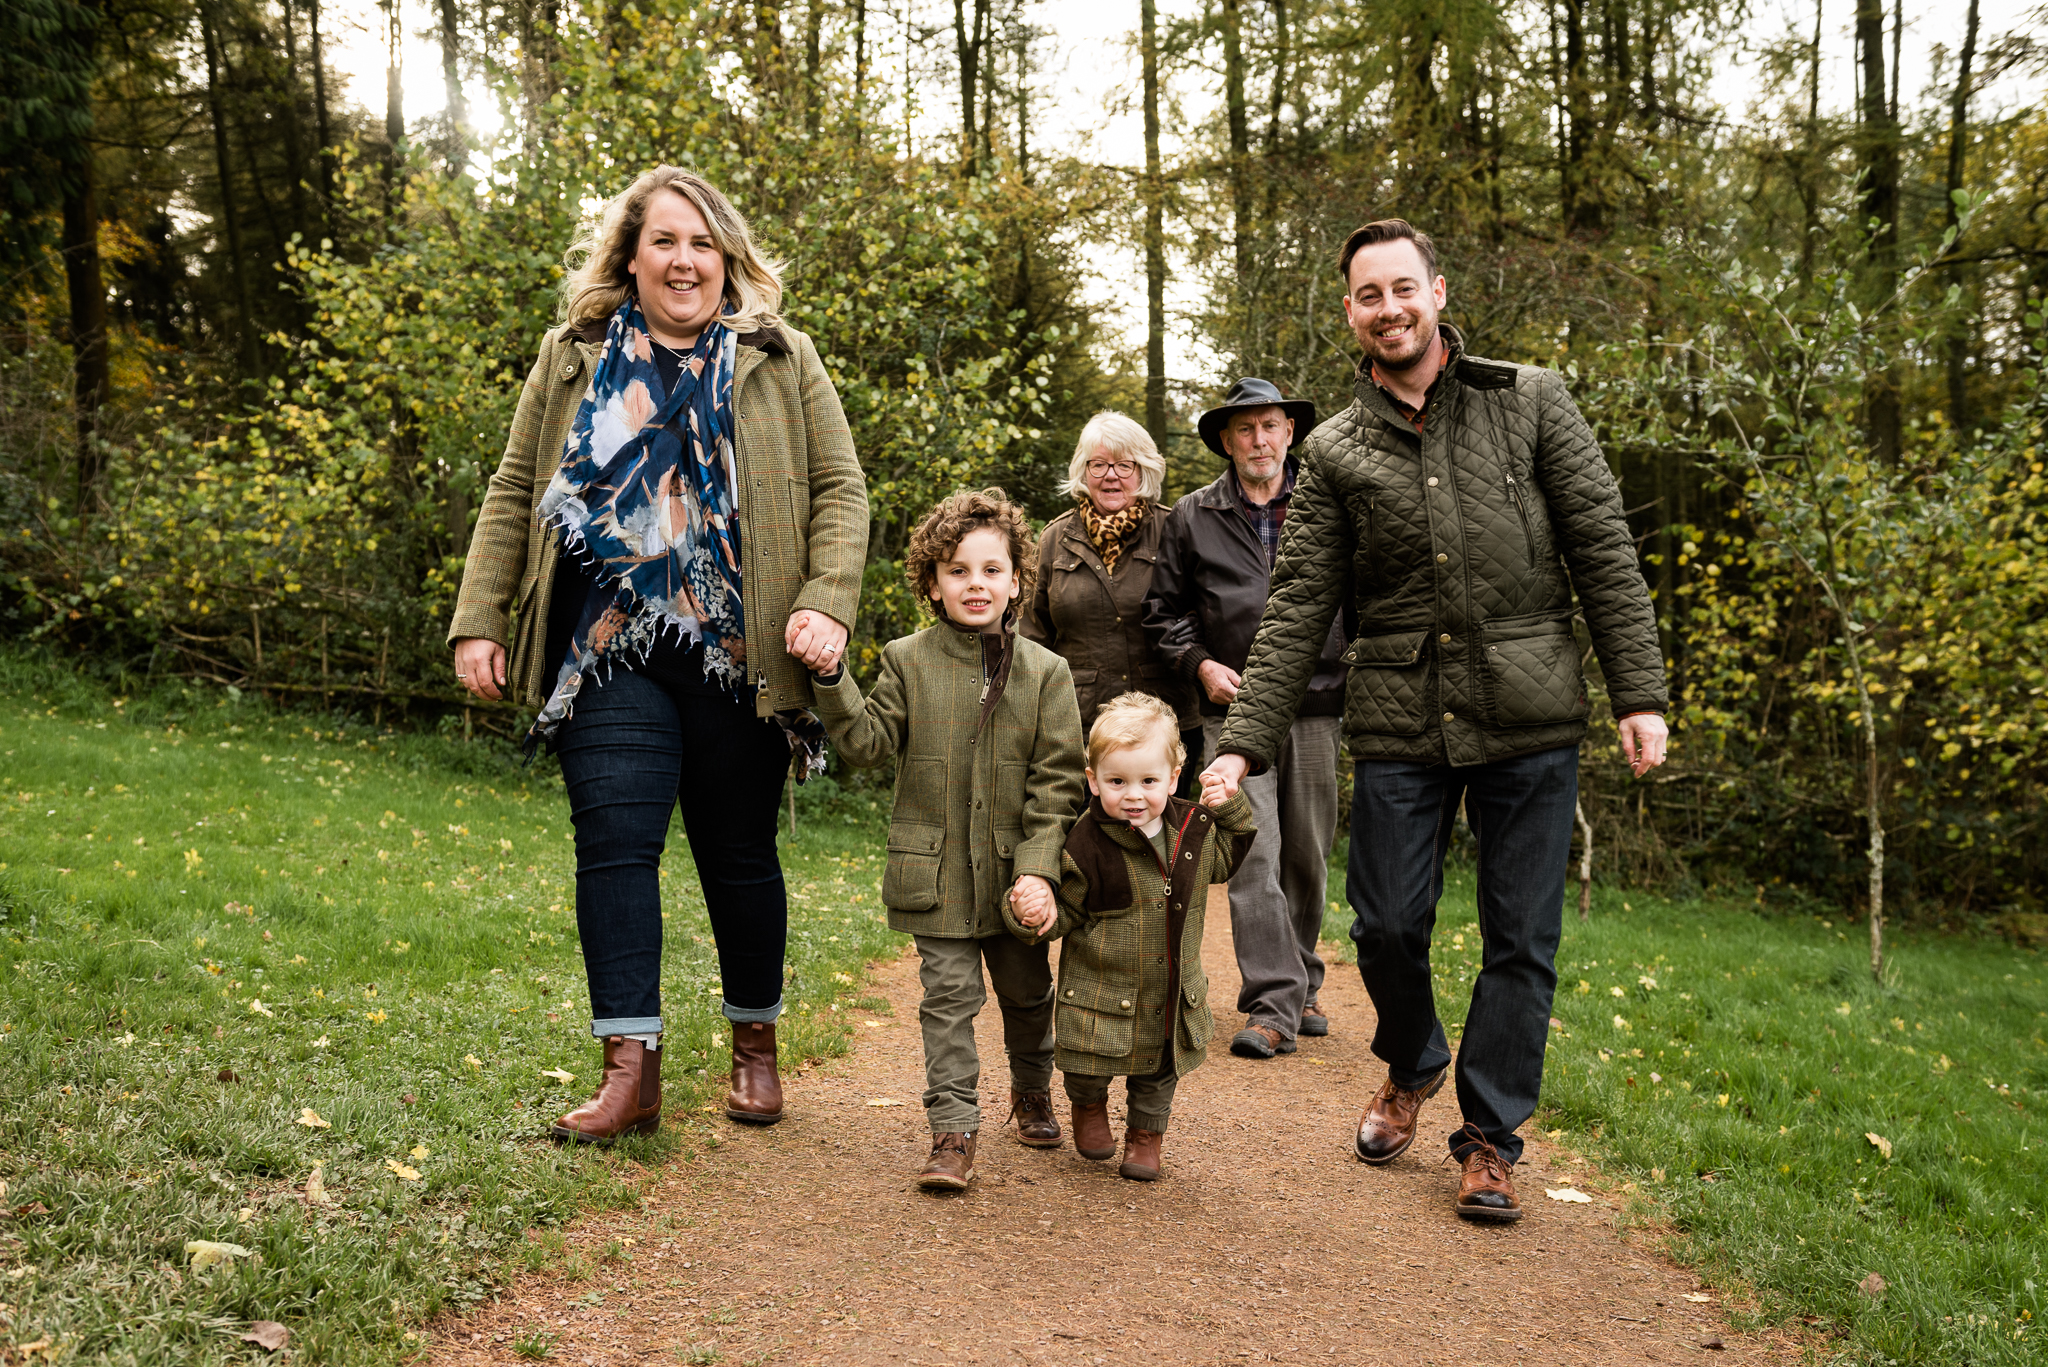 Autumn Documentary Lifestyle Family Photography at Clent Hills, Worcestershire Country Park countryside outdoors nature - Jenny Harper-9.jpg